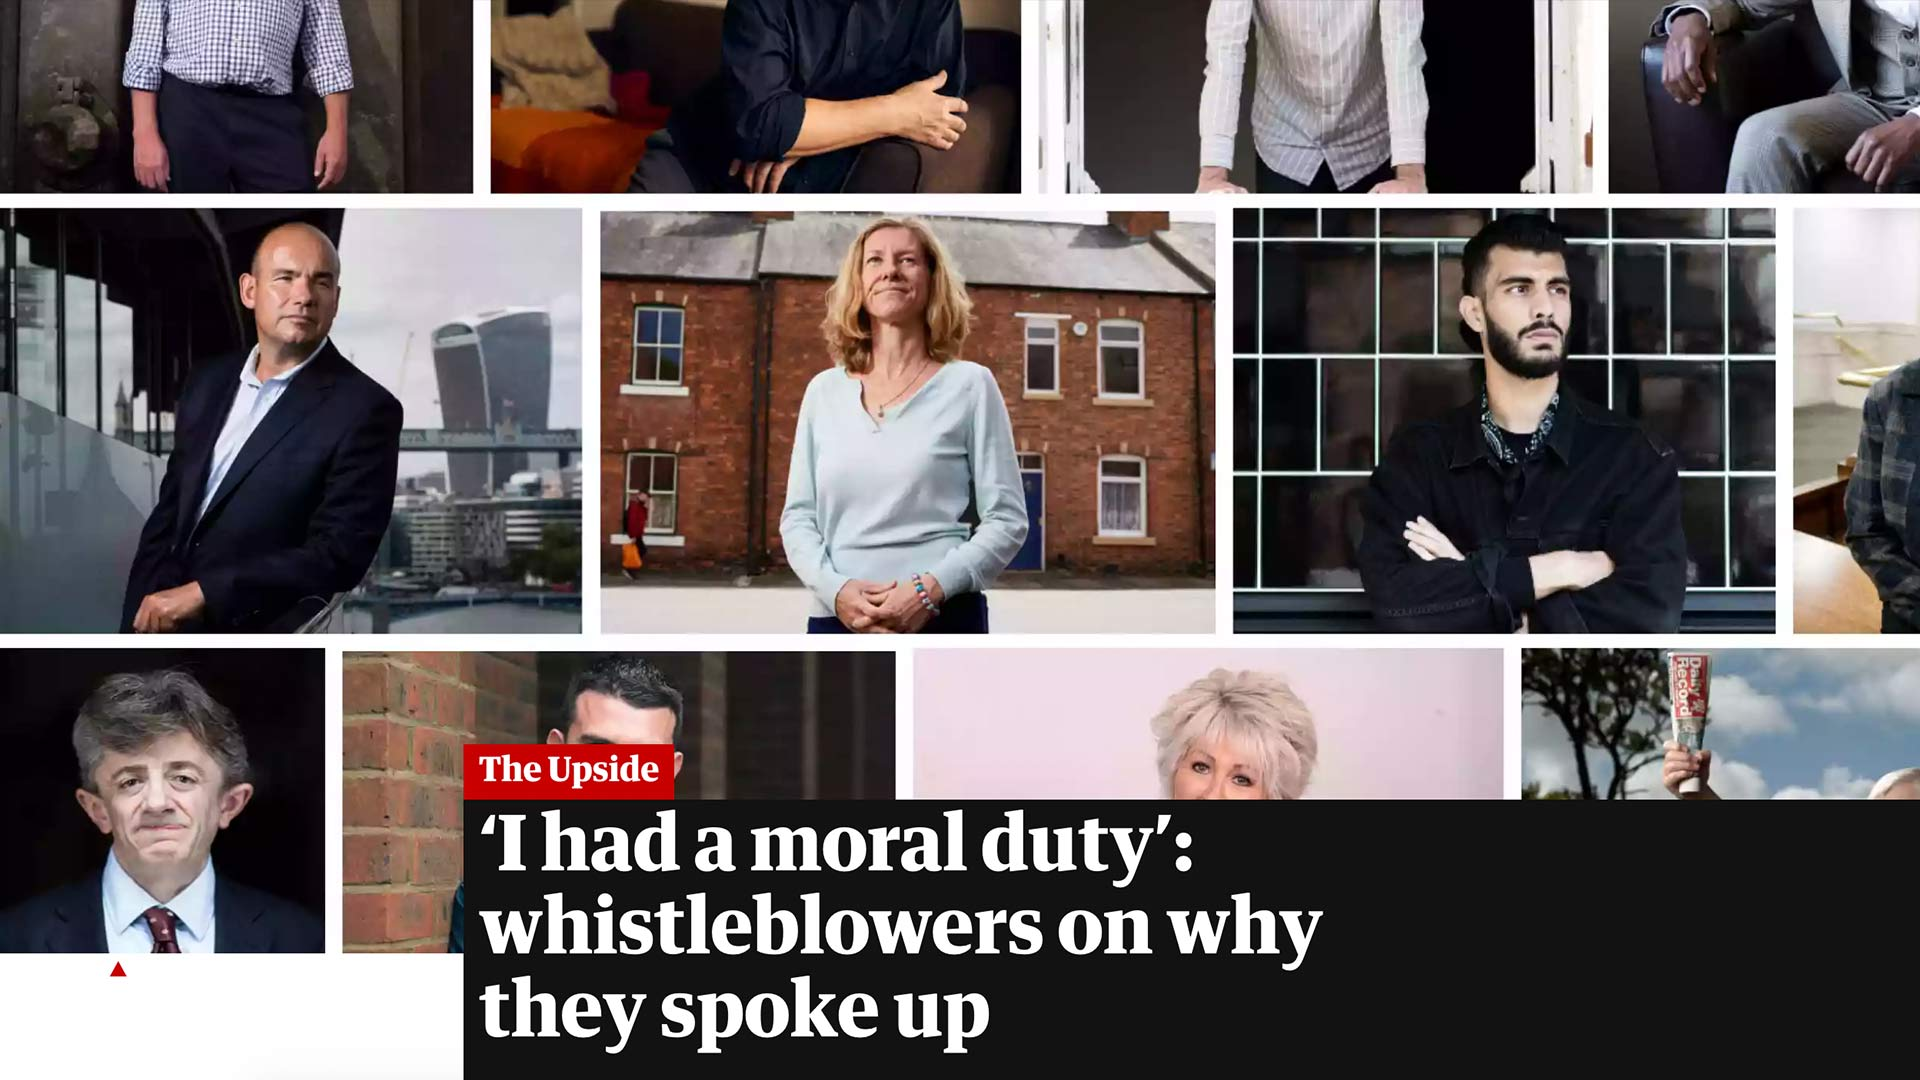 Fairness Rocks News 'I had a moral duty': whistleblowers on why they spoke up